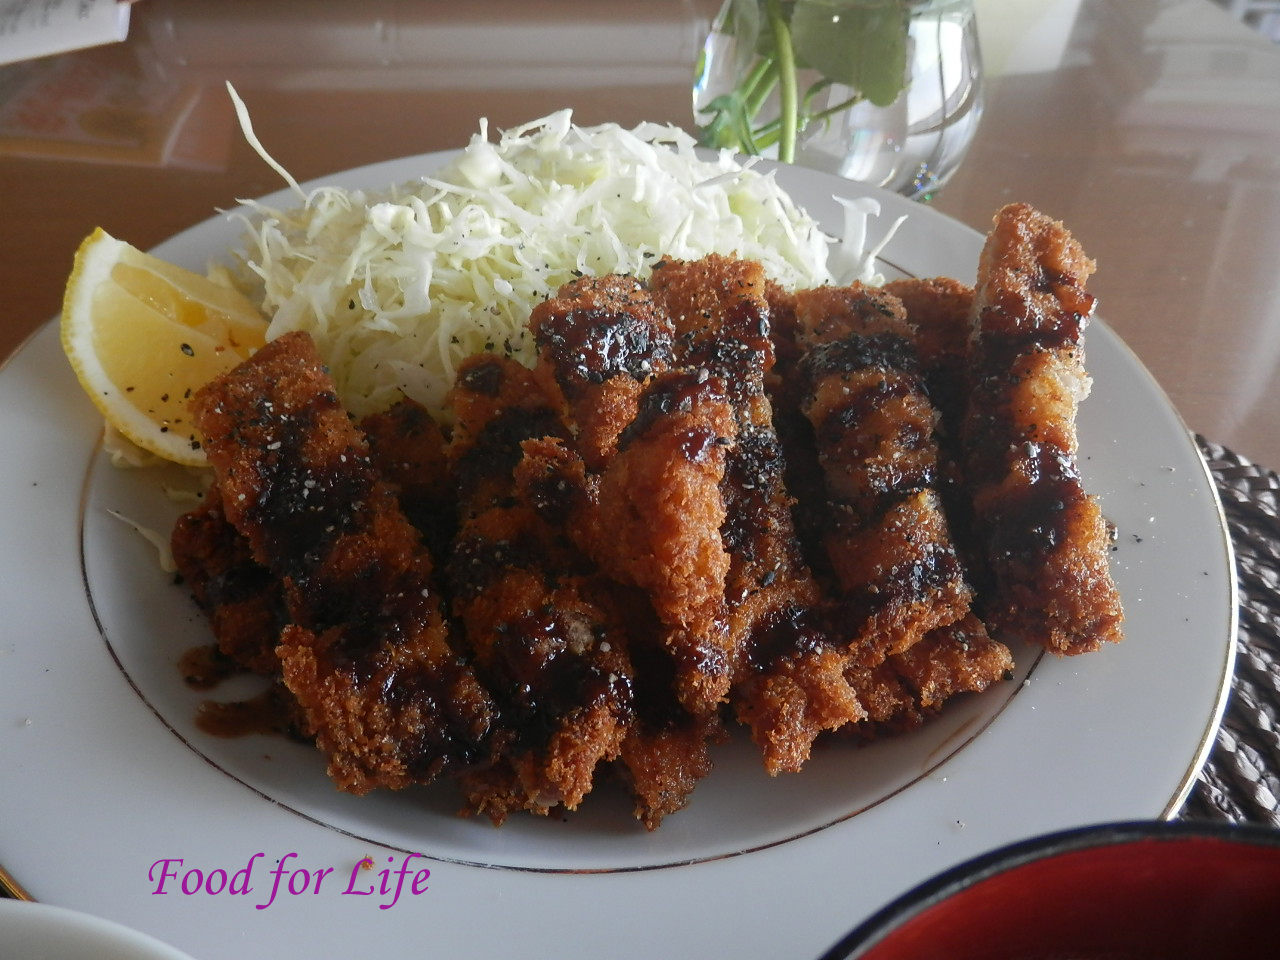 Food for Life: Tonkatsu (Japanese Pork Cutlet)